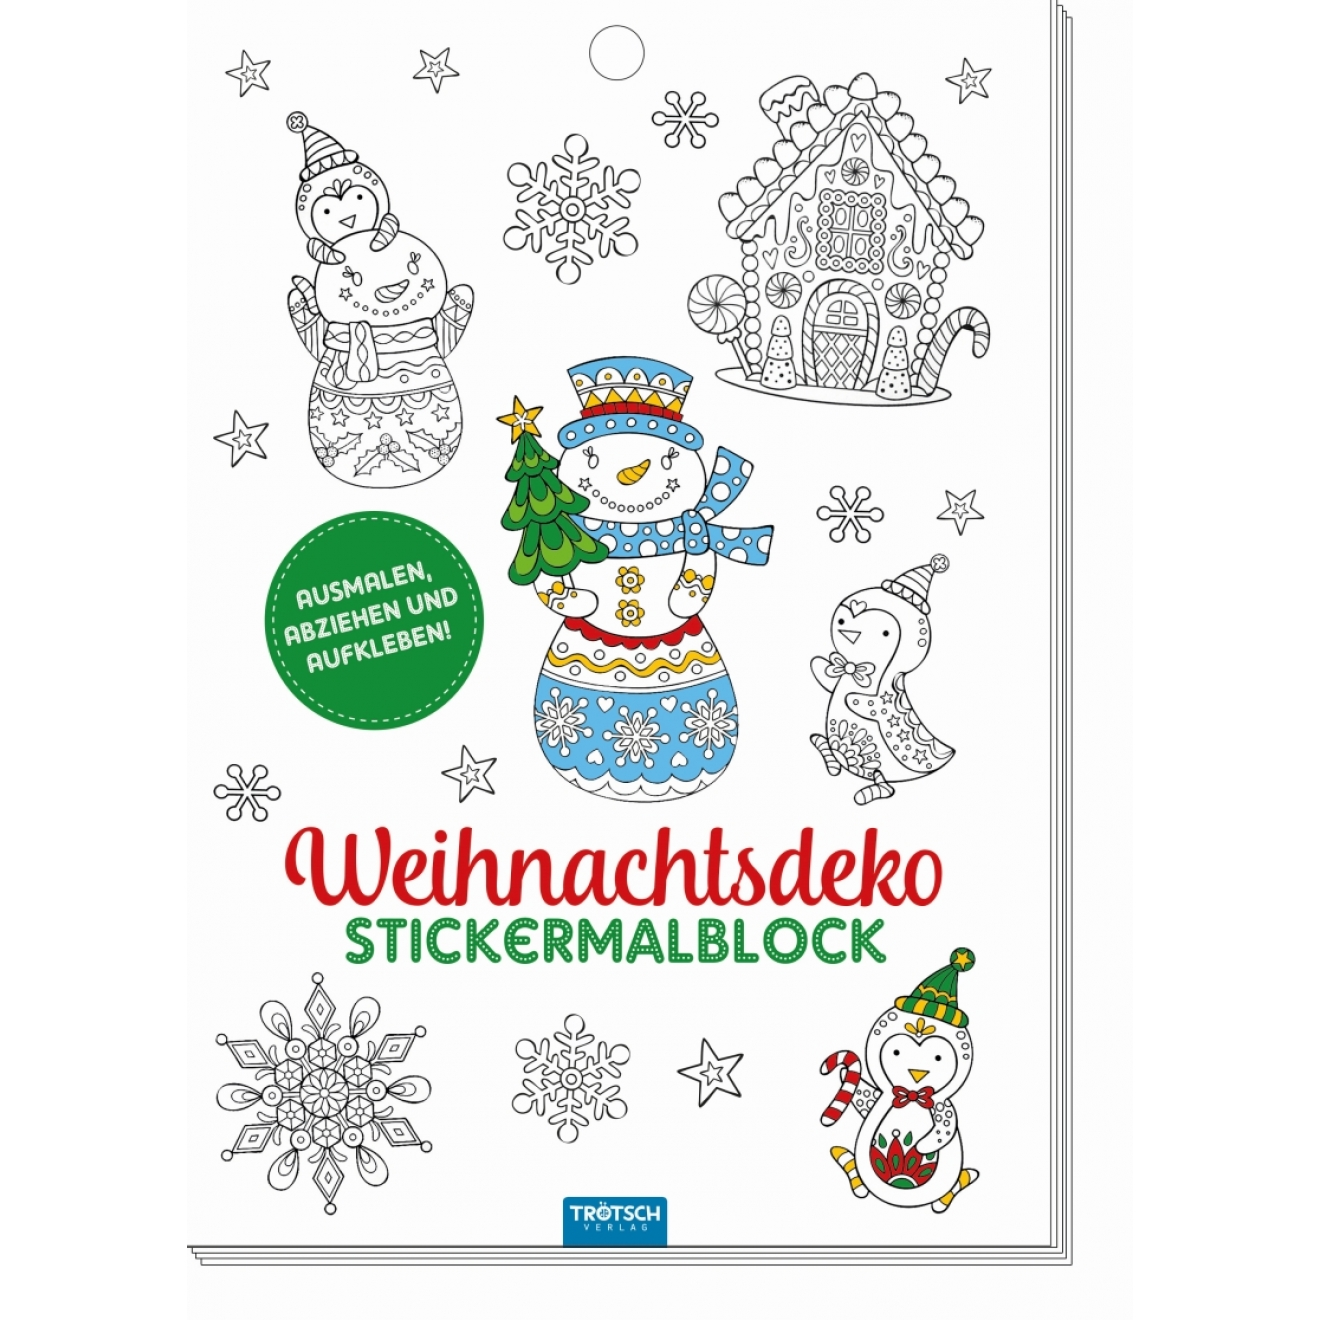 weihnachtsdeko stickermalblock tr tsch verlag online shop. Black Bedroom Furniture Sets. Home Design Ideas